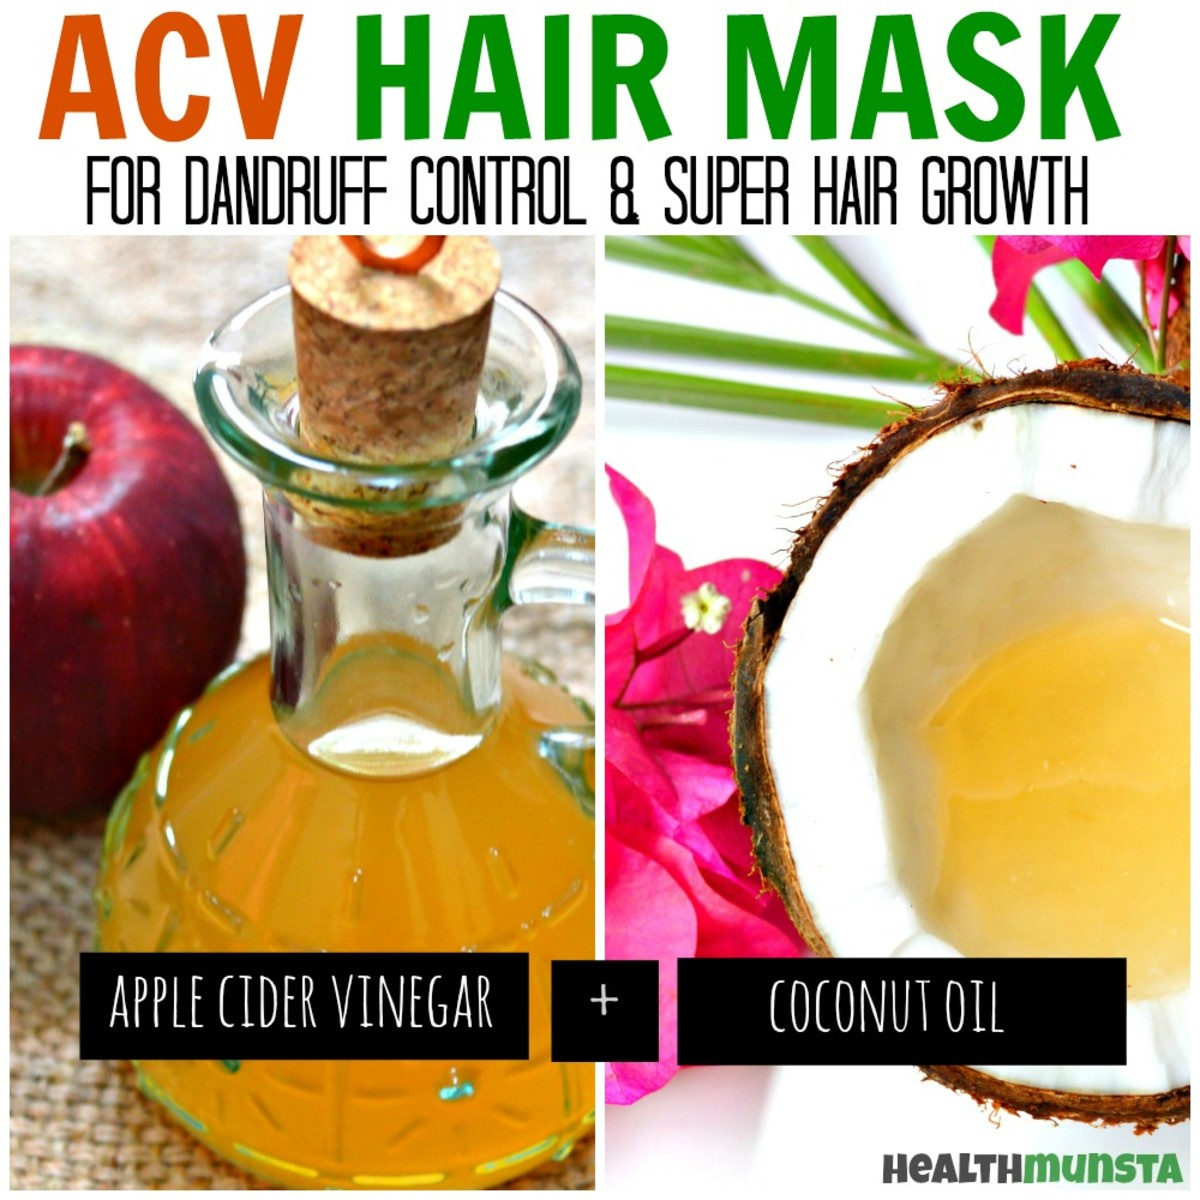 Apple cider vinegar for hair growth recipe